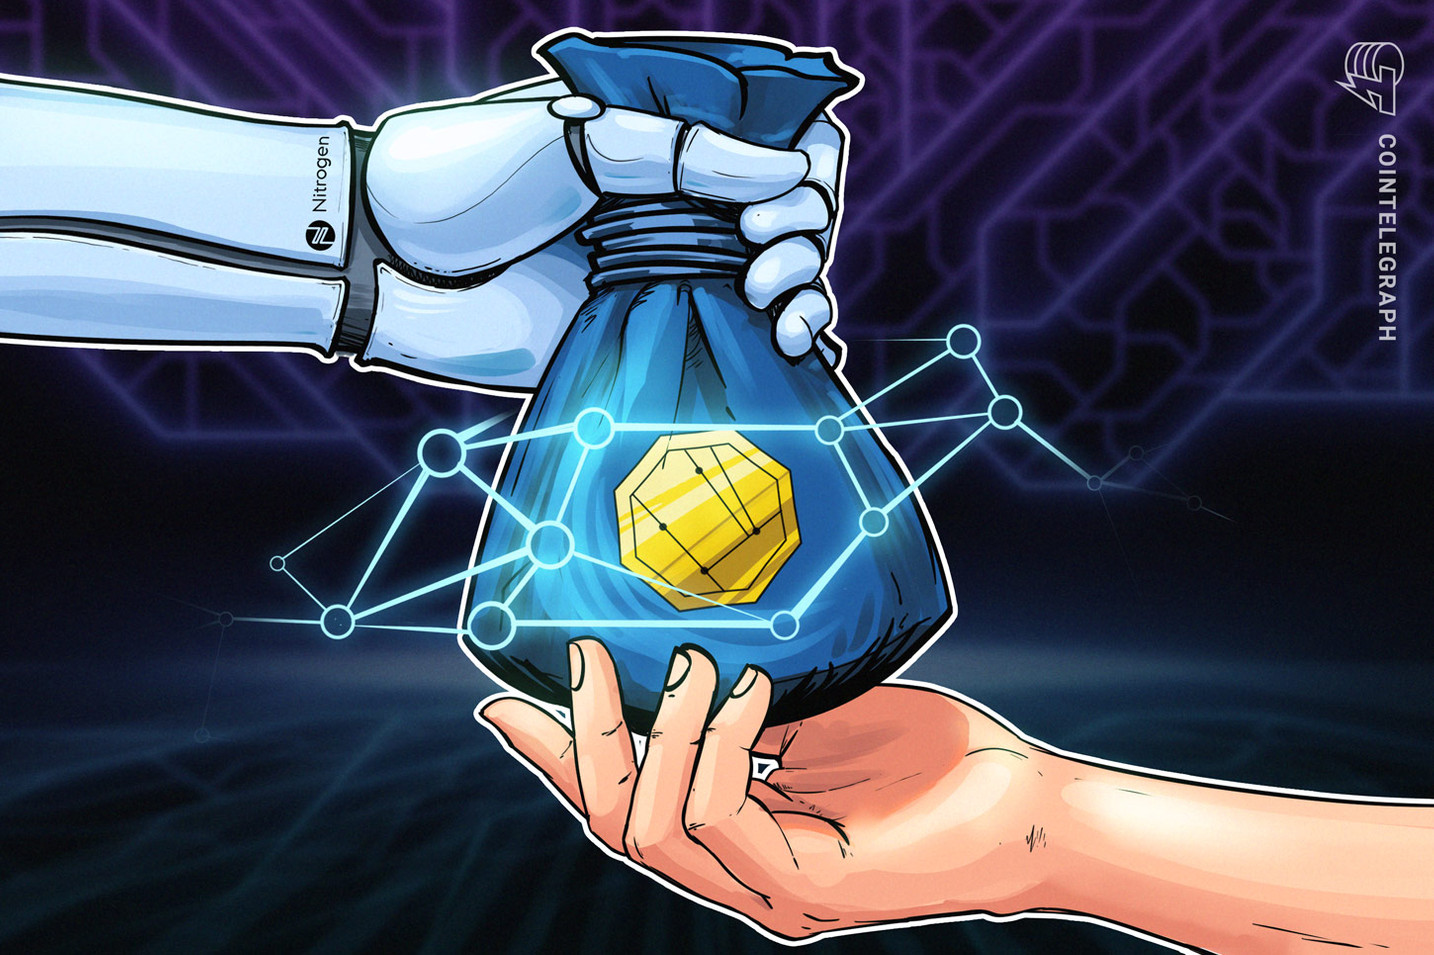 Decentralized Secured Loans Network Enables Borrowers and Lenders to Set Their Own Terms